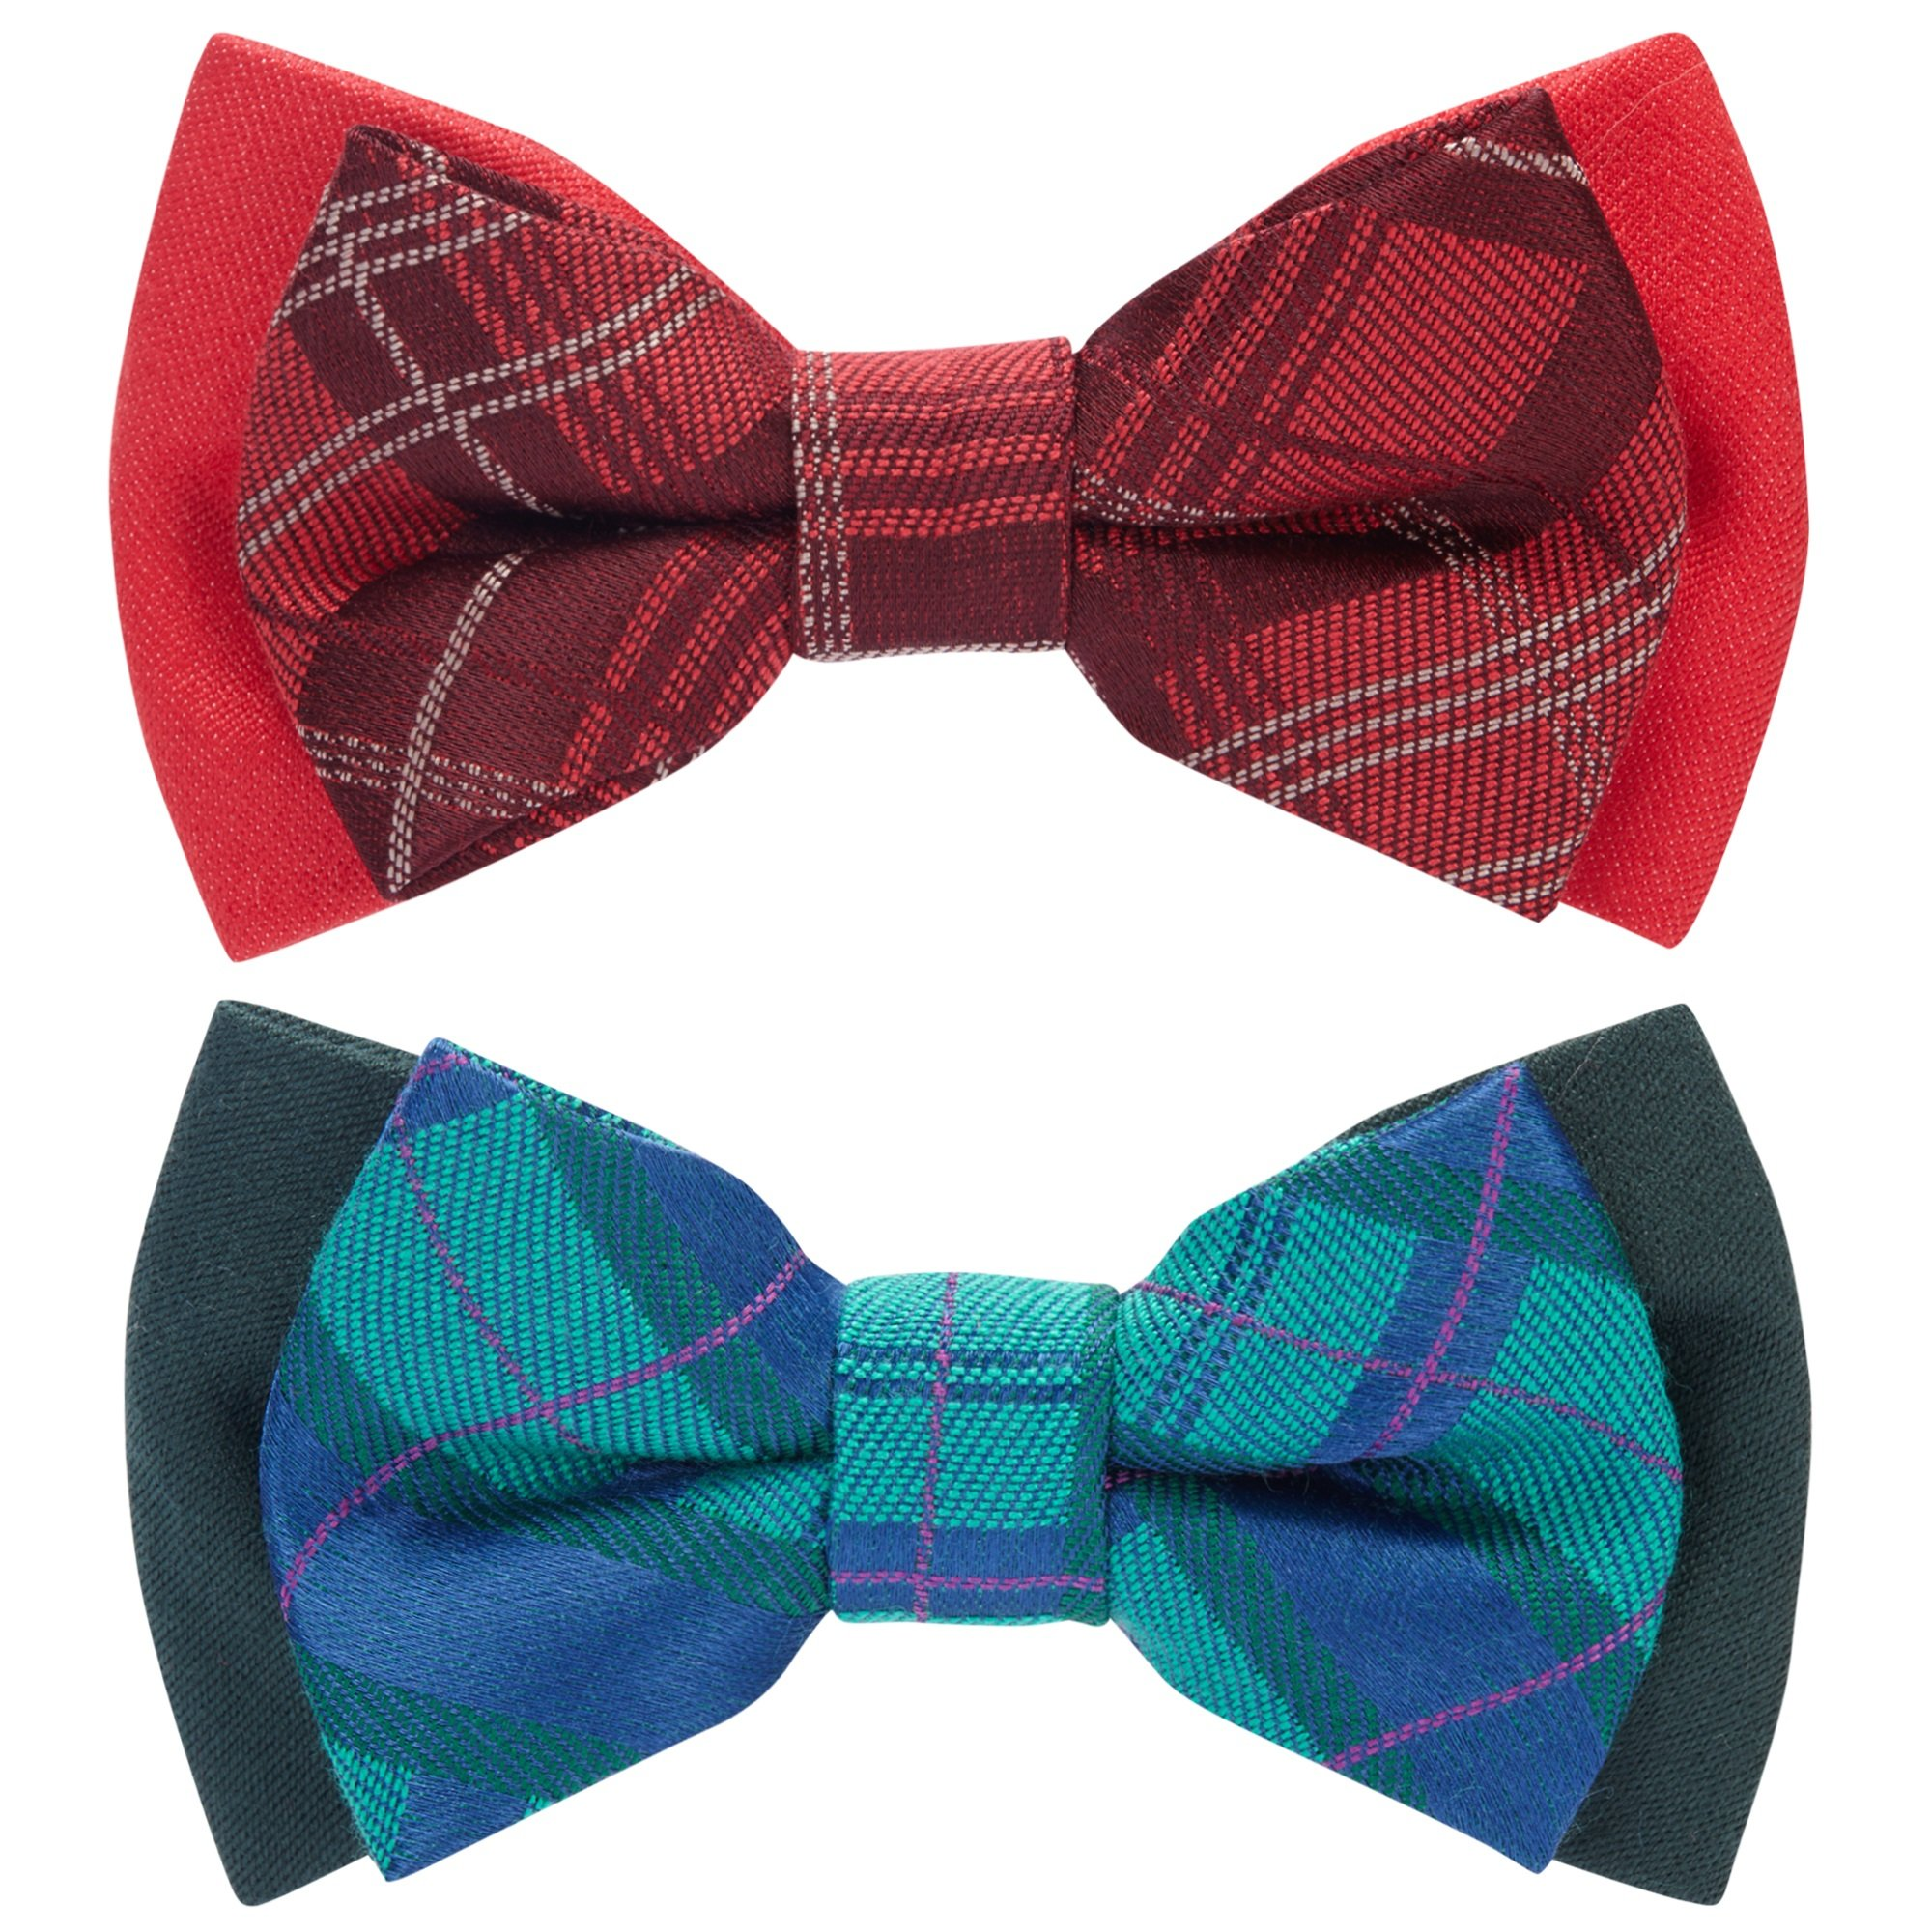 Blueberry Pet Summer Gift Box with Pack of 2 Handmade Dog Cat Bow Tie, Scottish Plaid Tartan Style Bowtie Set in Scarlet Red & Emerald Green, 4'' 2.5''